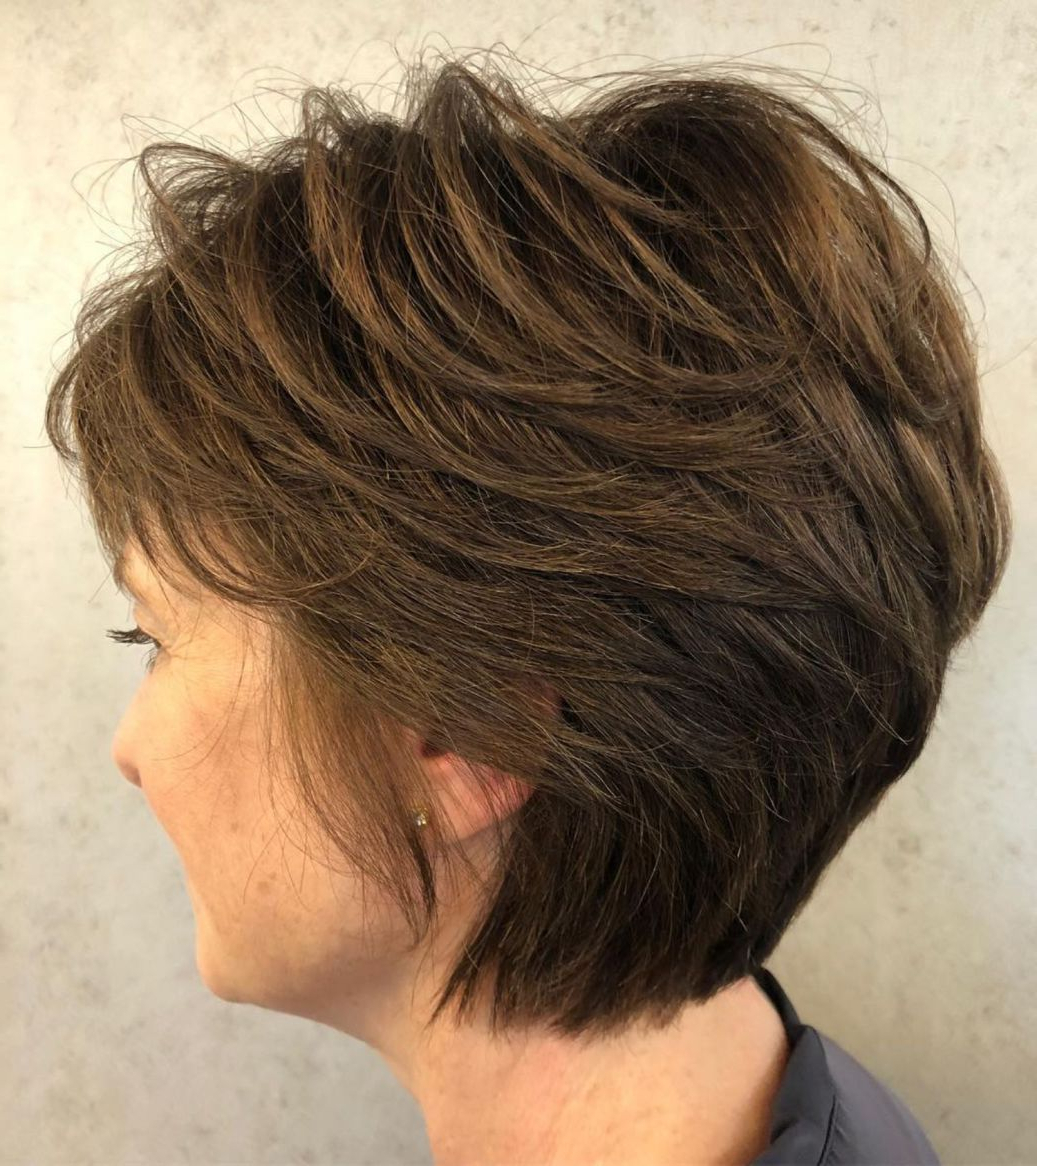 80 Best Modern Hairstyles And Haircuts For Women Over 50 In In Two Tone Feathered Pixie Haircuts (View 8 of 20)